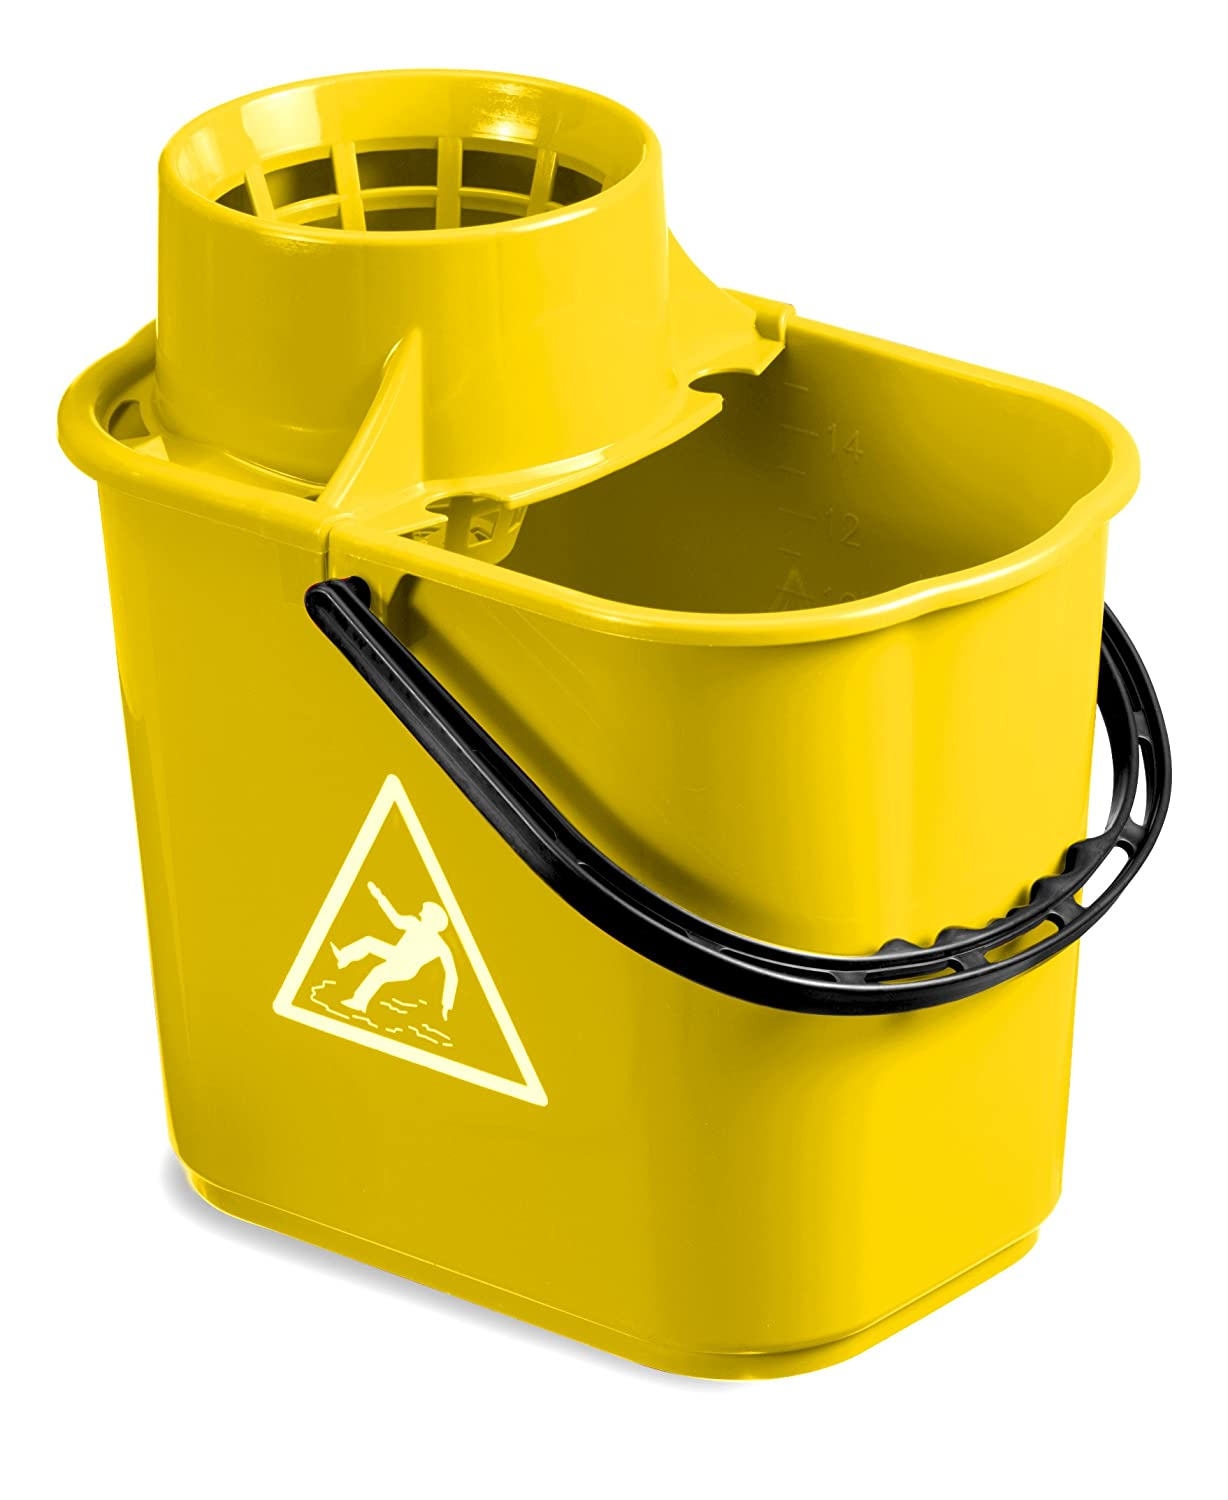 TTS 00005043 Easy Mop Bucket with Wringer, 14 Litre Capacity, Yellow 14Litre Capacity TTS CLEANING S.R.L.